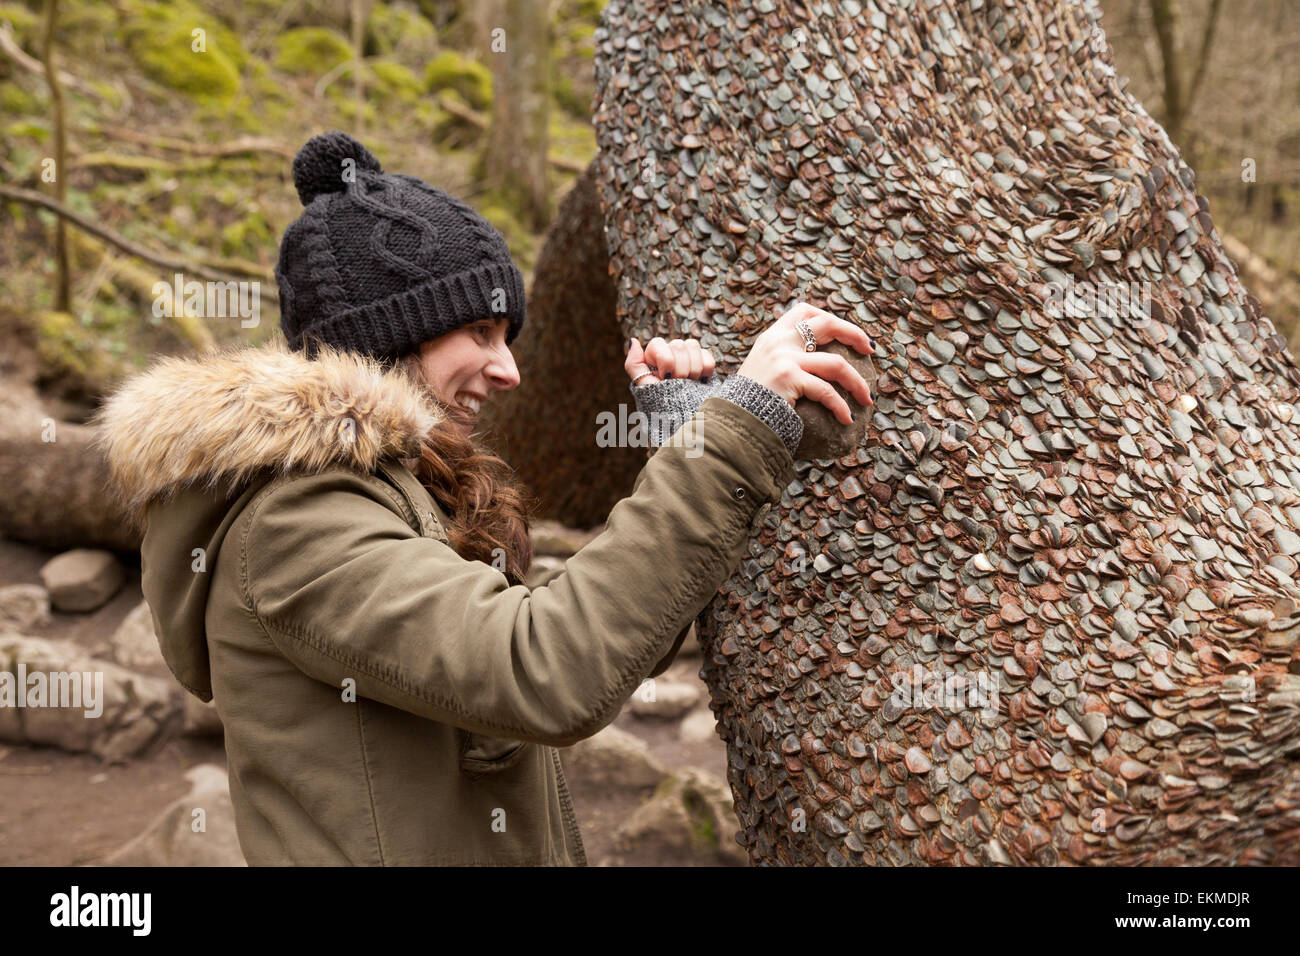 A young woman bashing a coin into the Money Tree for luck; Ingleton Waterfall Trail, Yorkshire Dales, England UK - Stock Image